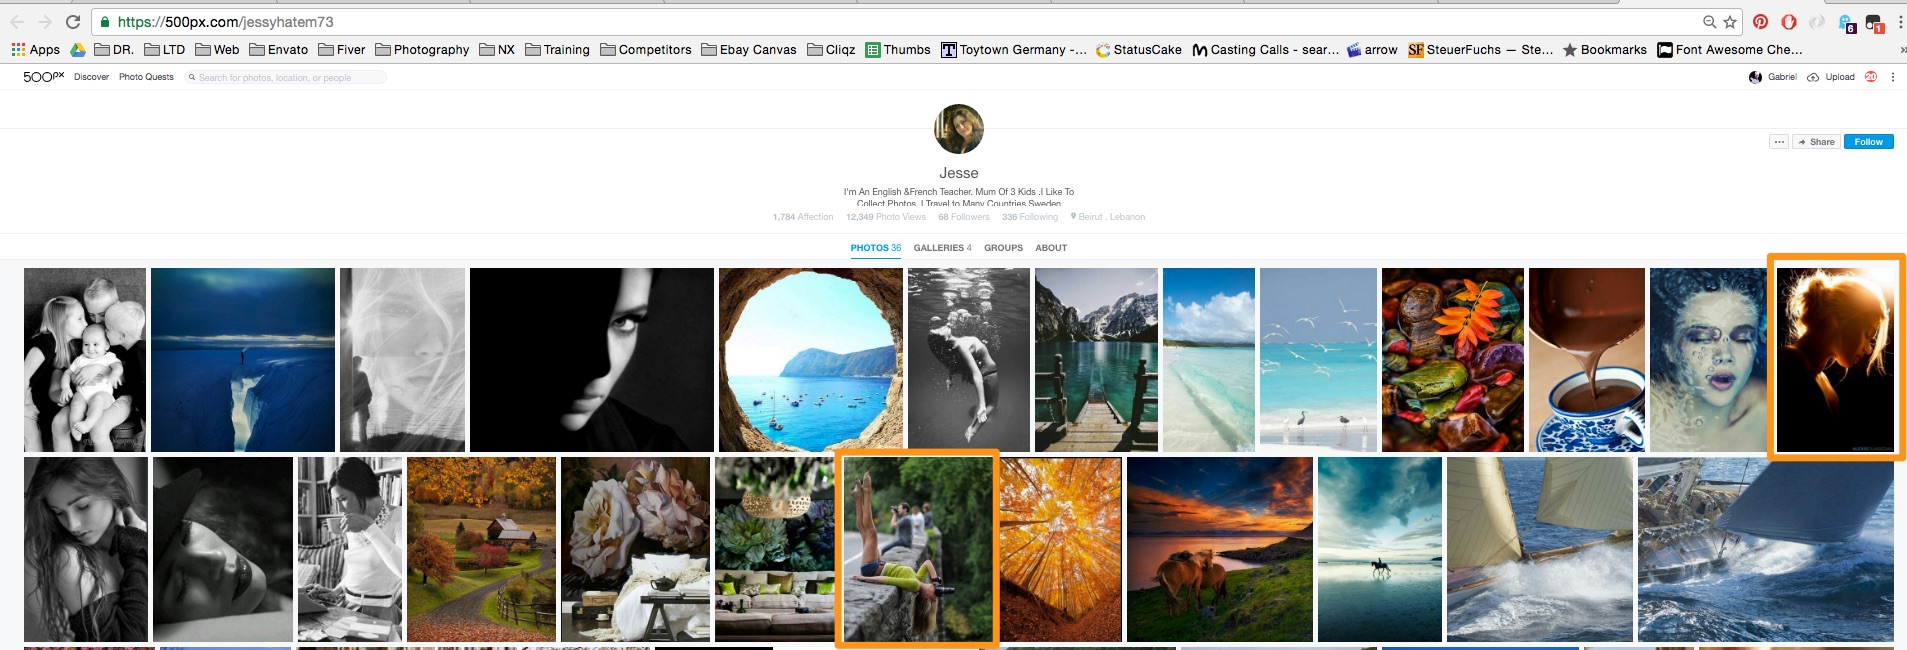 500px build better profile and get more followers – Freegafo